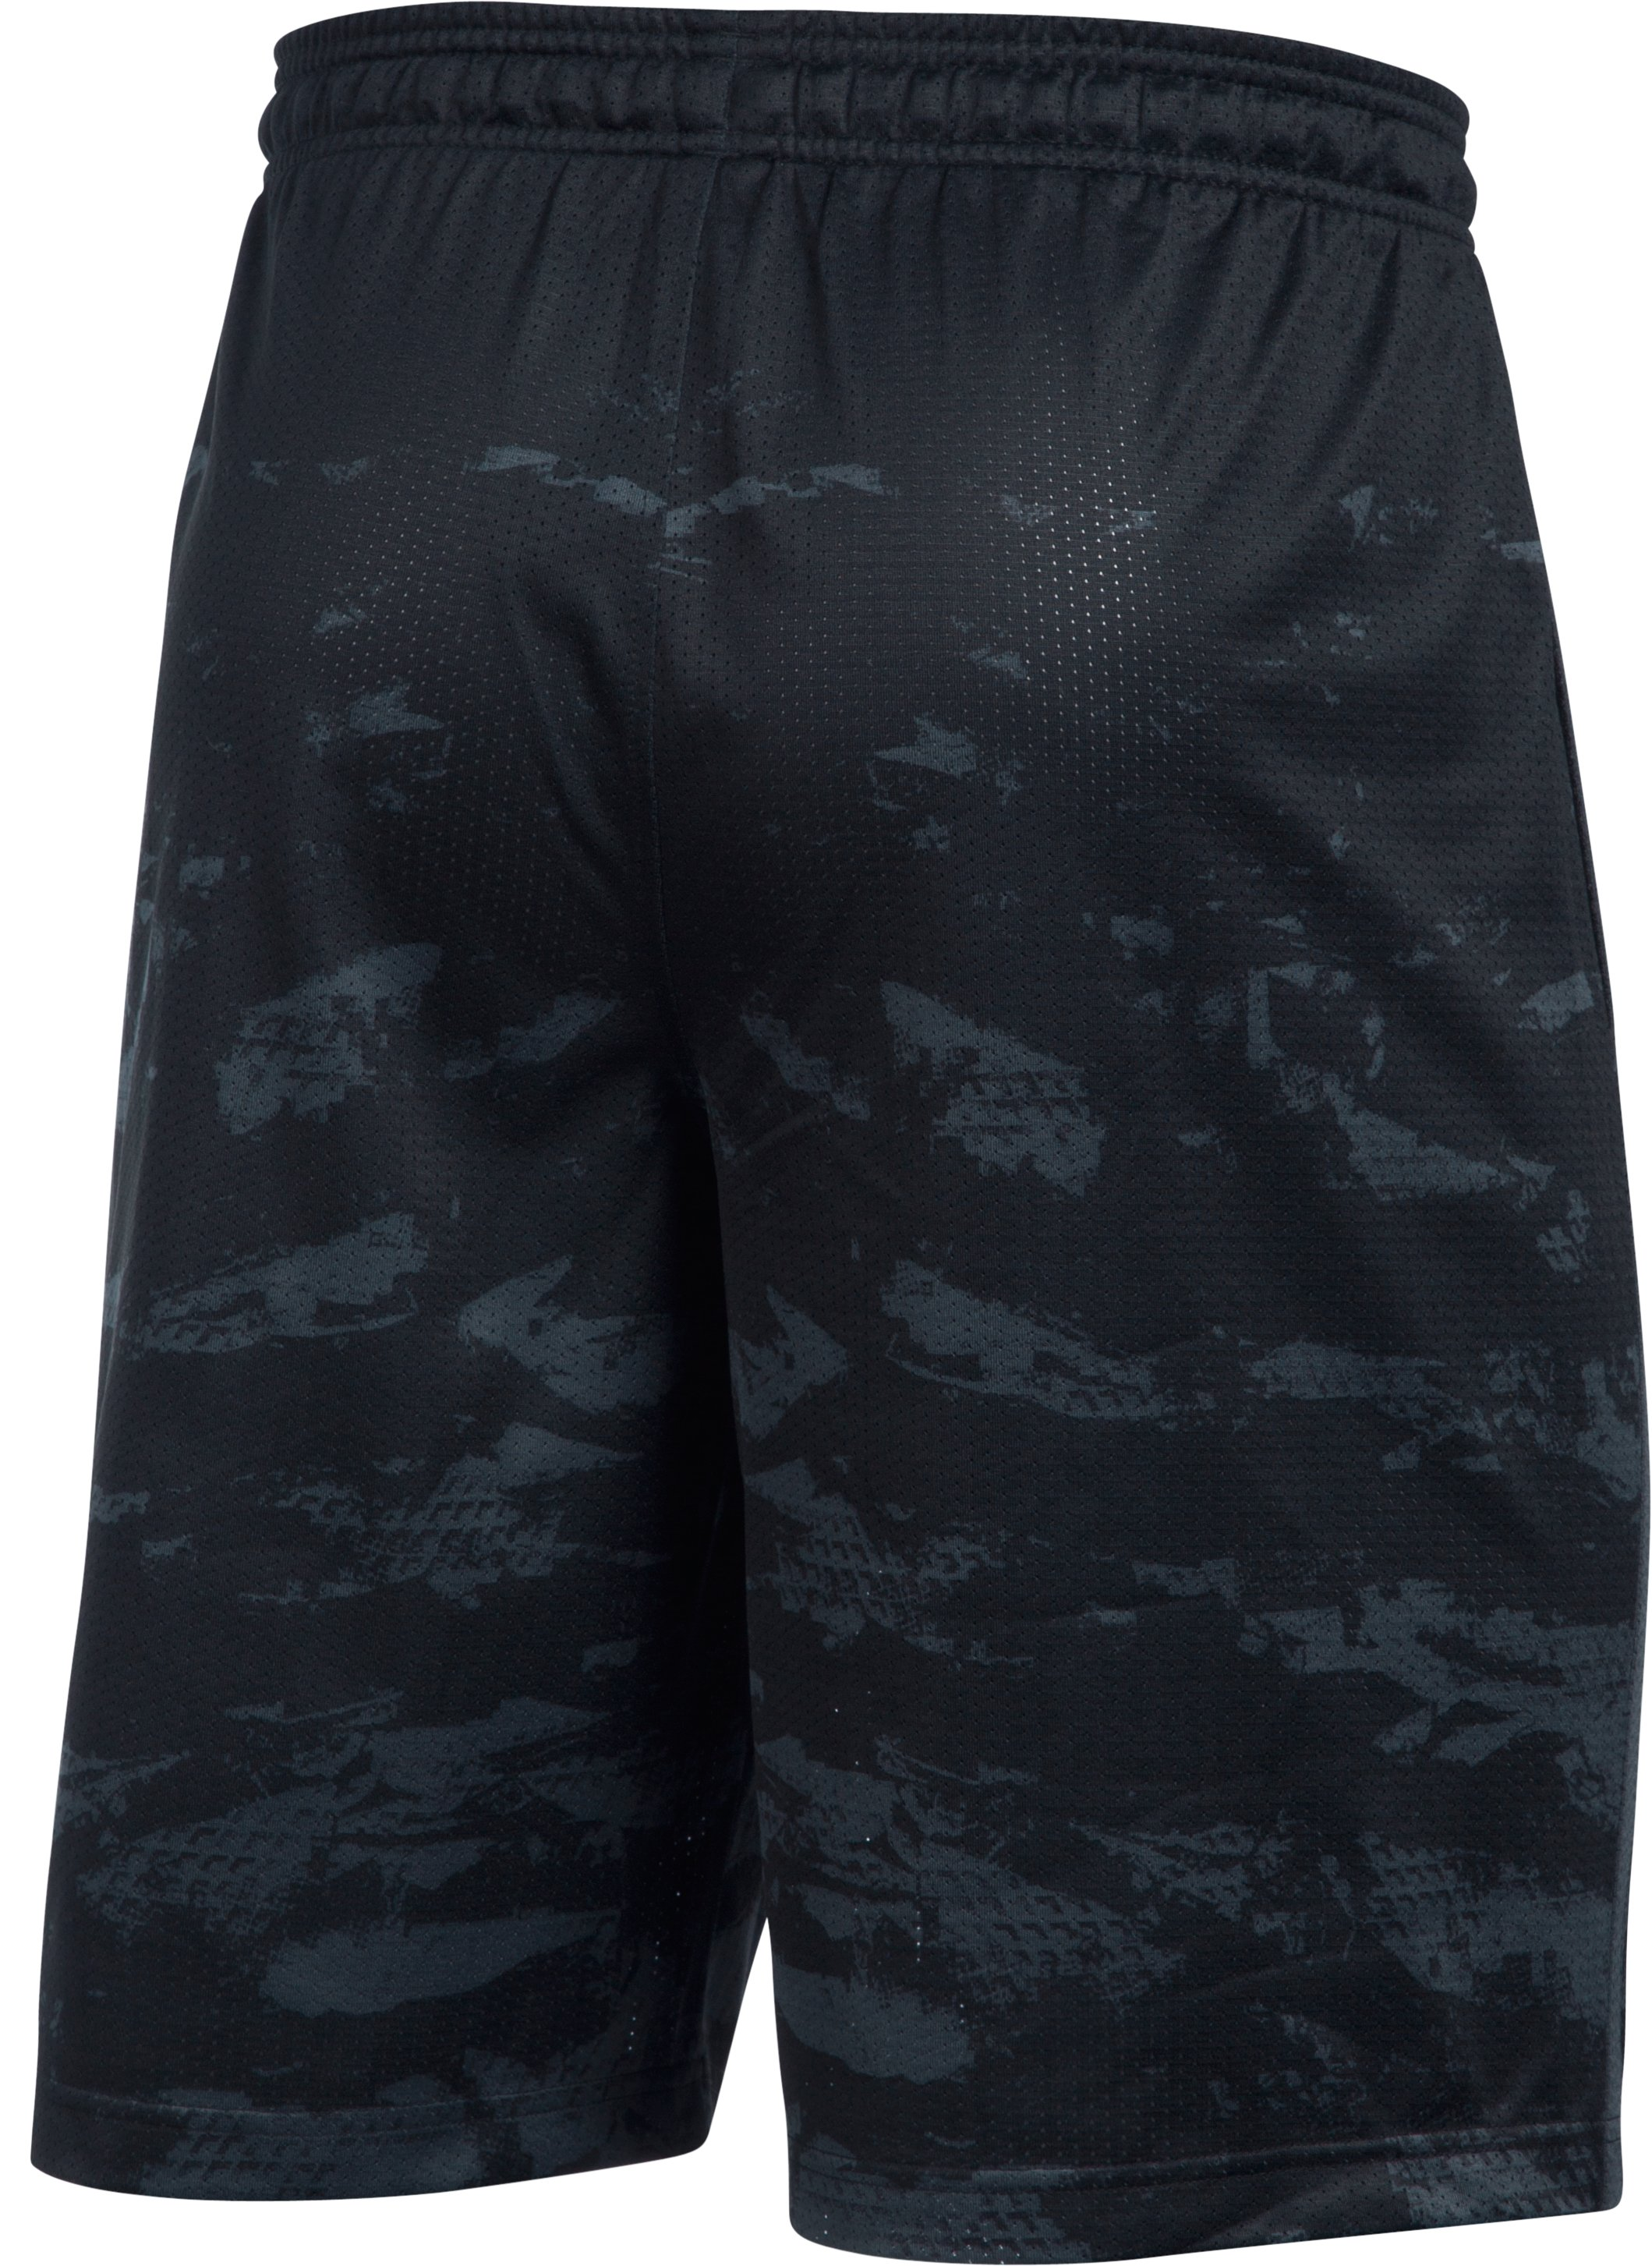 Men's UA Baseball Training Shorts, Black , undefined